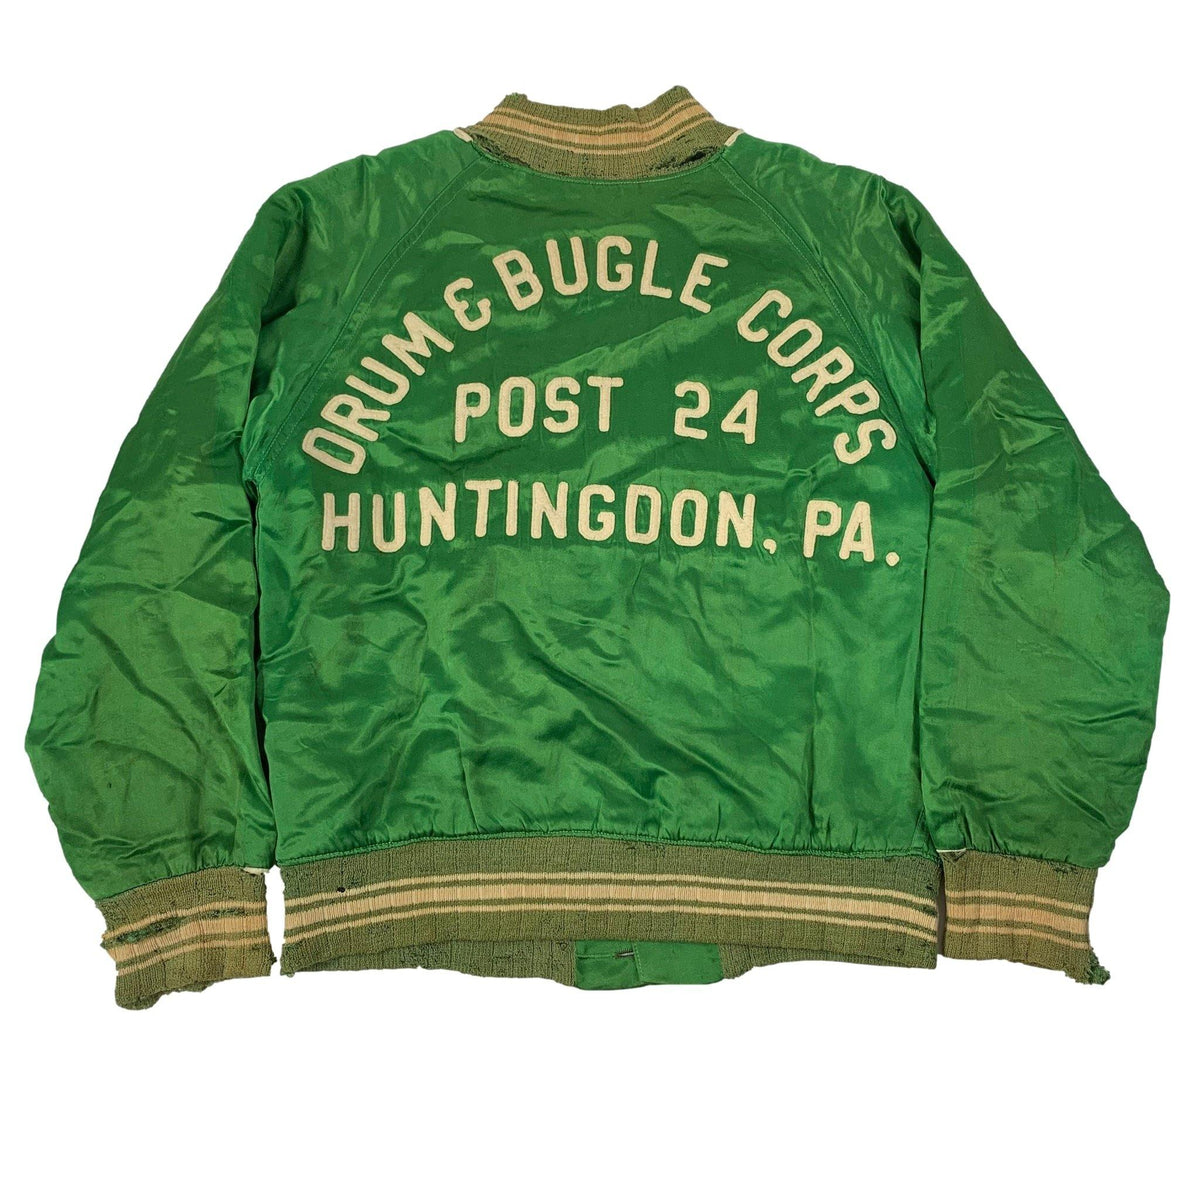 "Vintage Drum & Bugle Corps ""Huntingdon, PA."" Satin Jacket - jointcustodydc"